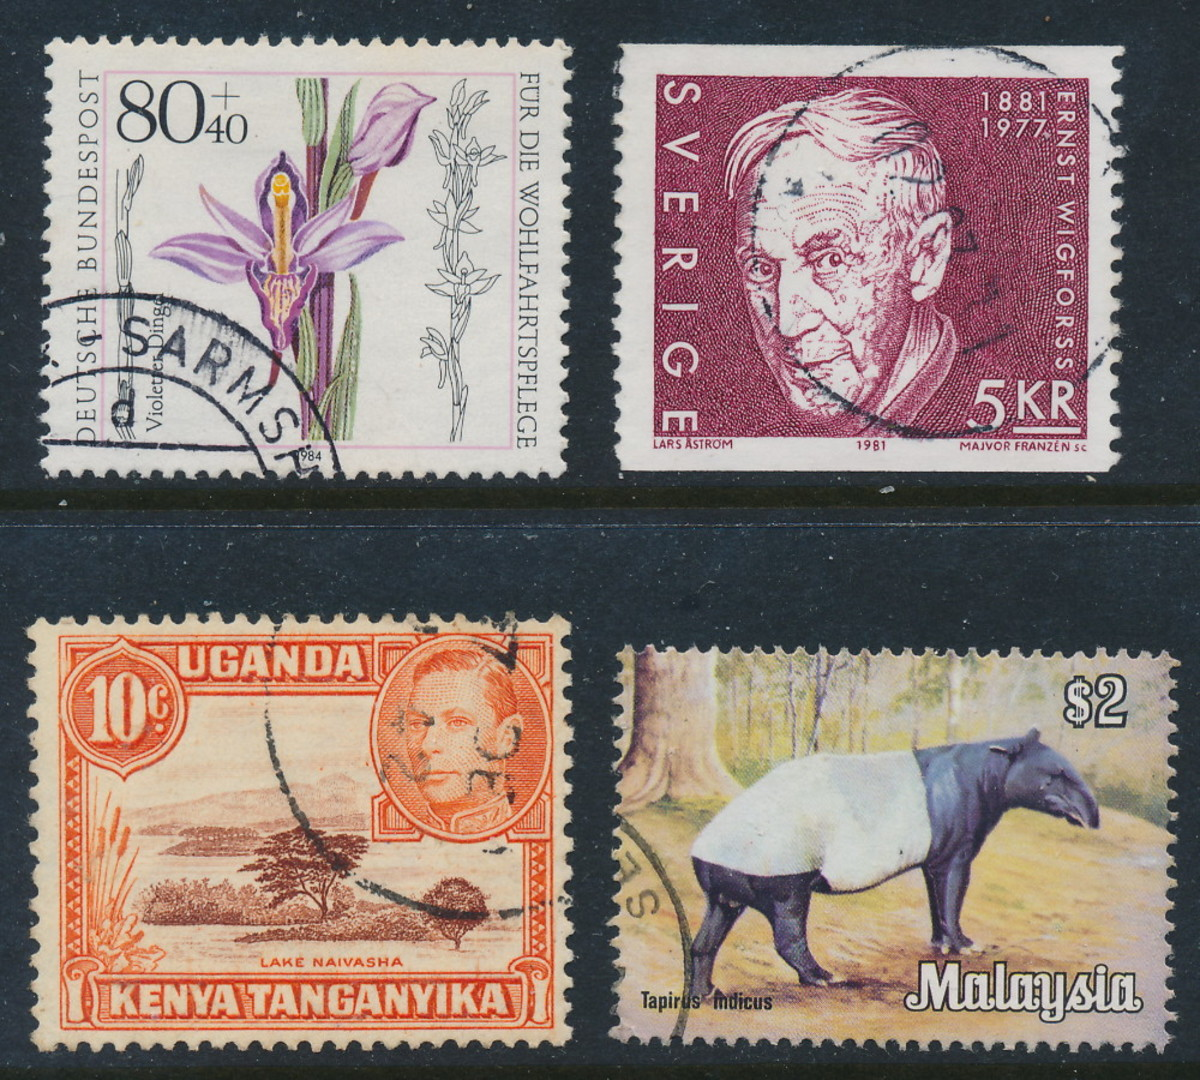 Stamps from different corners of the world